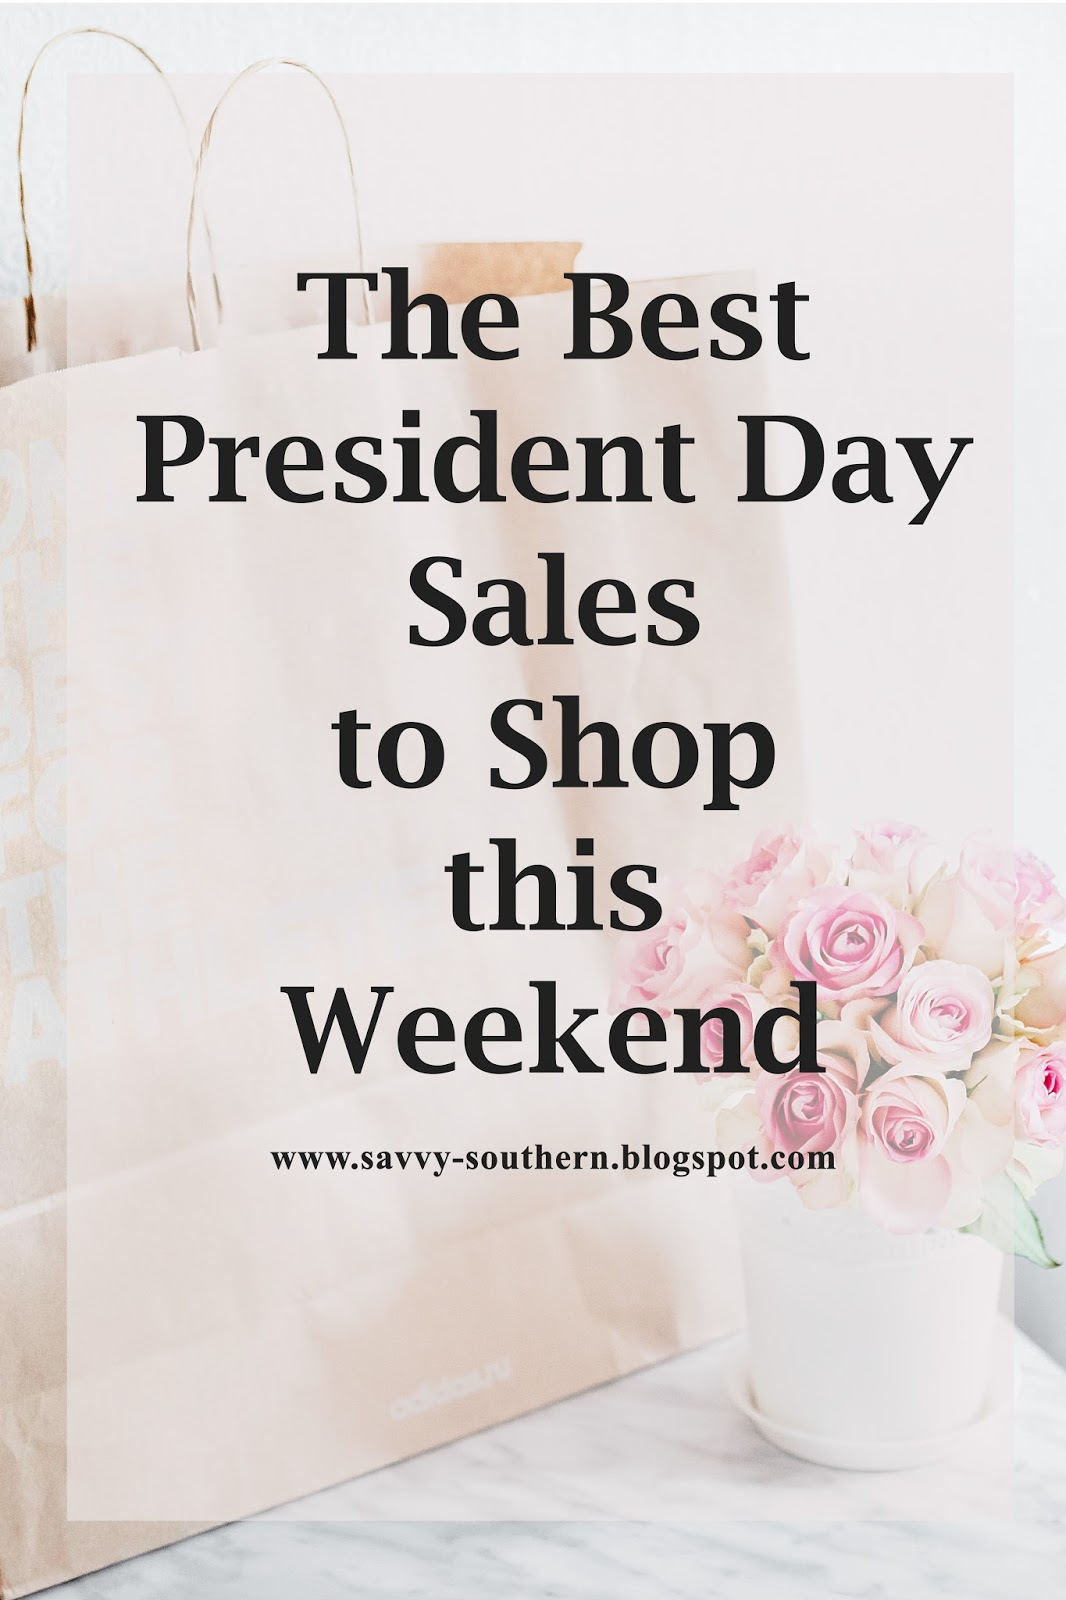 The Best President Day Sales to shop this weekend